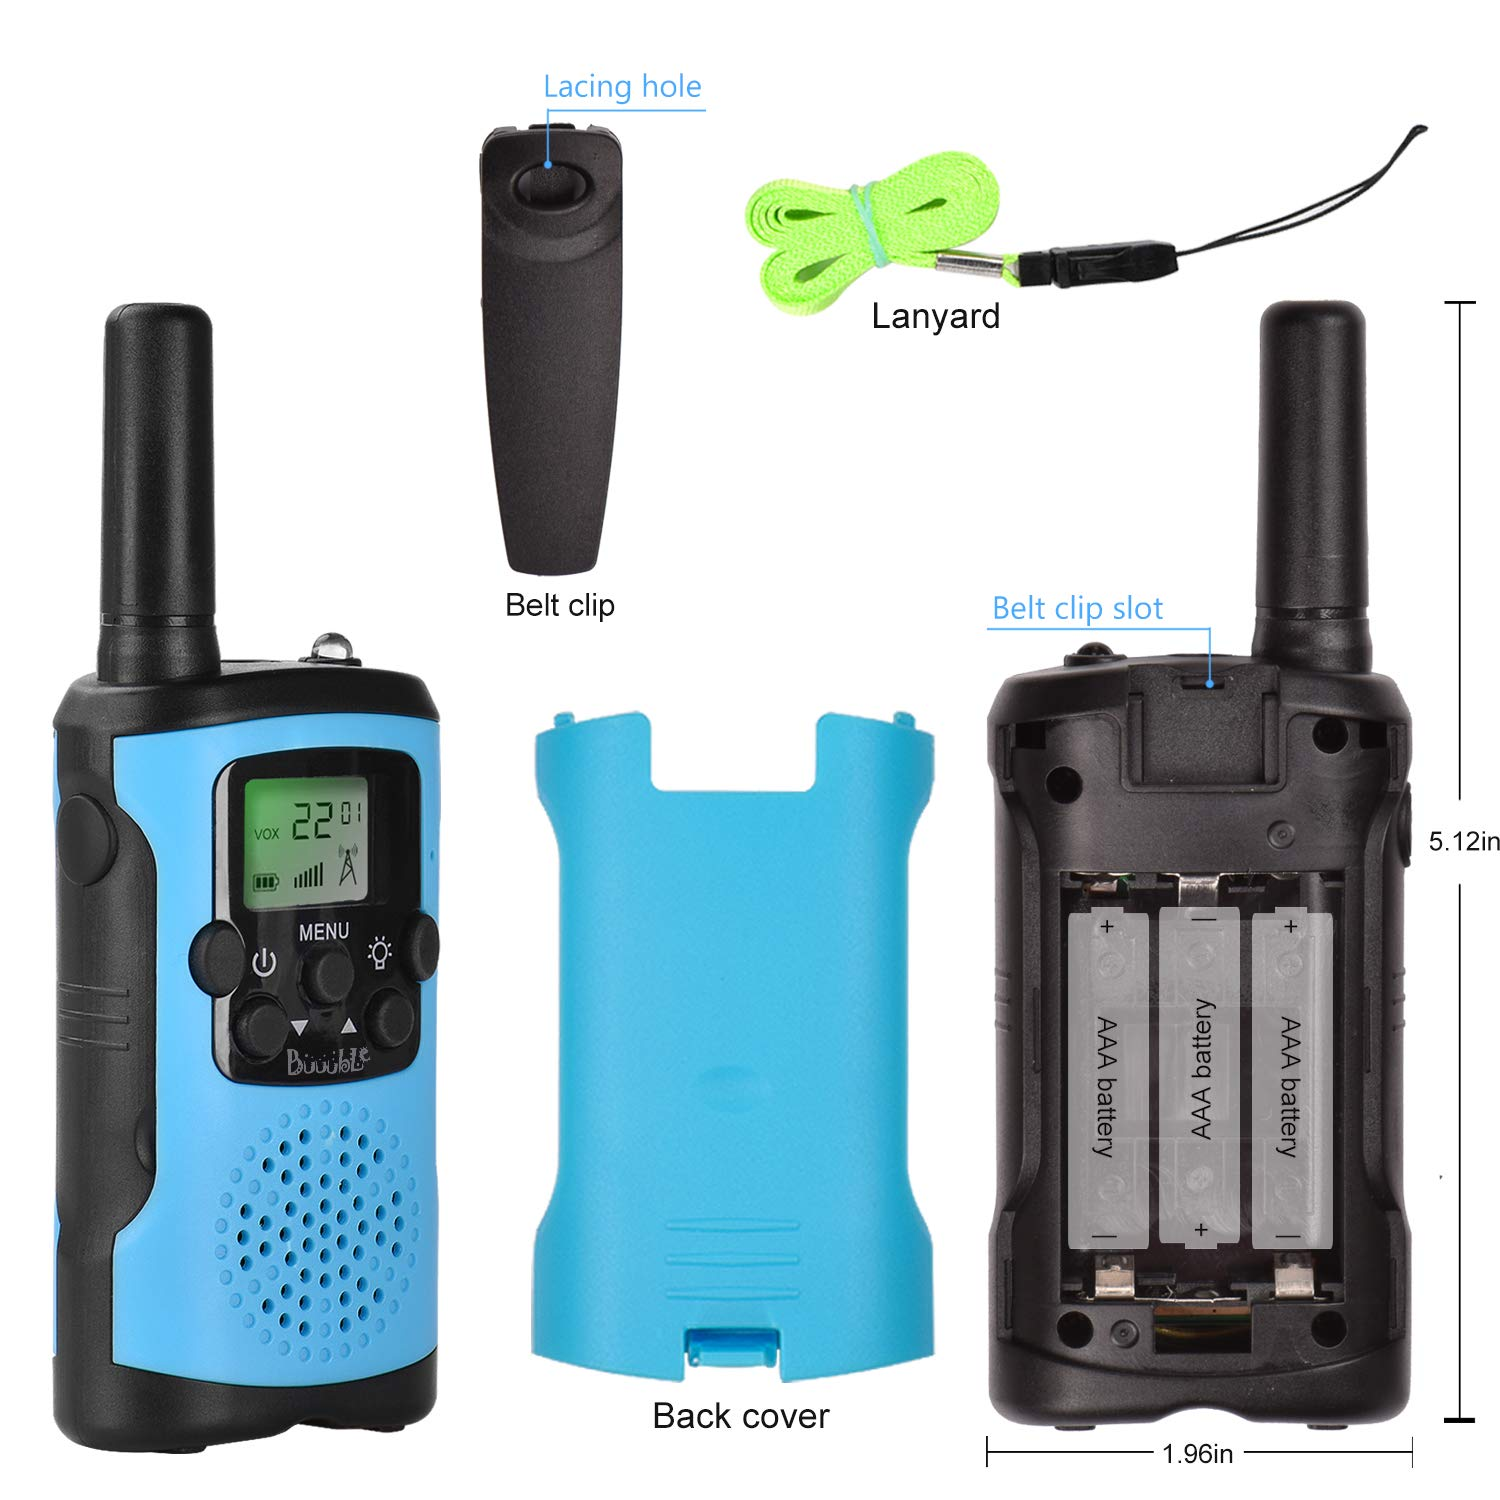 Walkie Talkies for Kids 22 Channel 3 Mile Long Range Many People Use It to Prevent Children's Myopia and Away from Electronic Games Best Birthday Gifts for 4-6 Year Old Boys Girls More Fun Game (Blue) by Buuuble (Image #6)